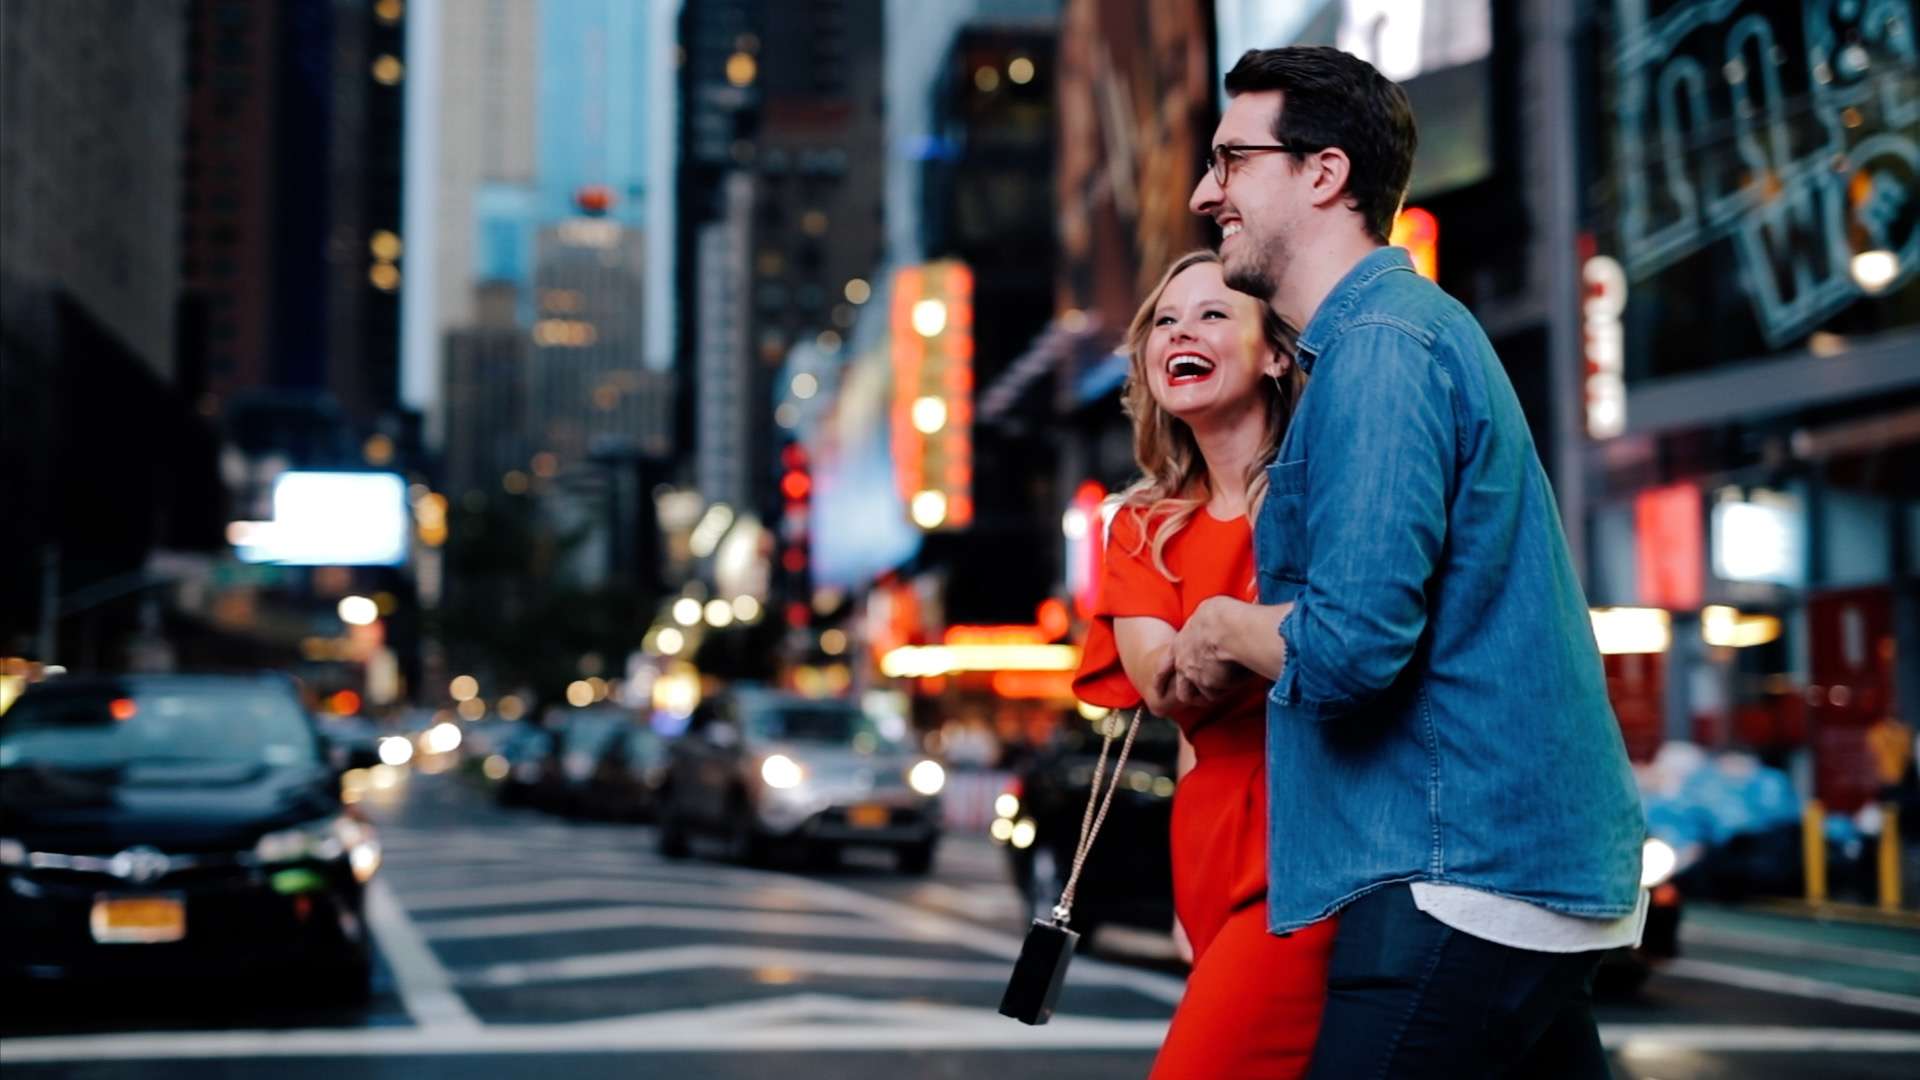 A couple walks happily down Broadway in New York City